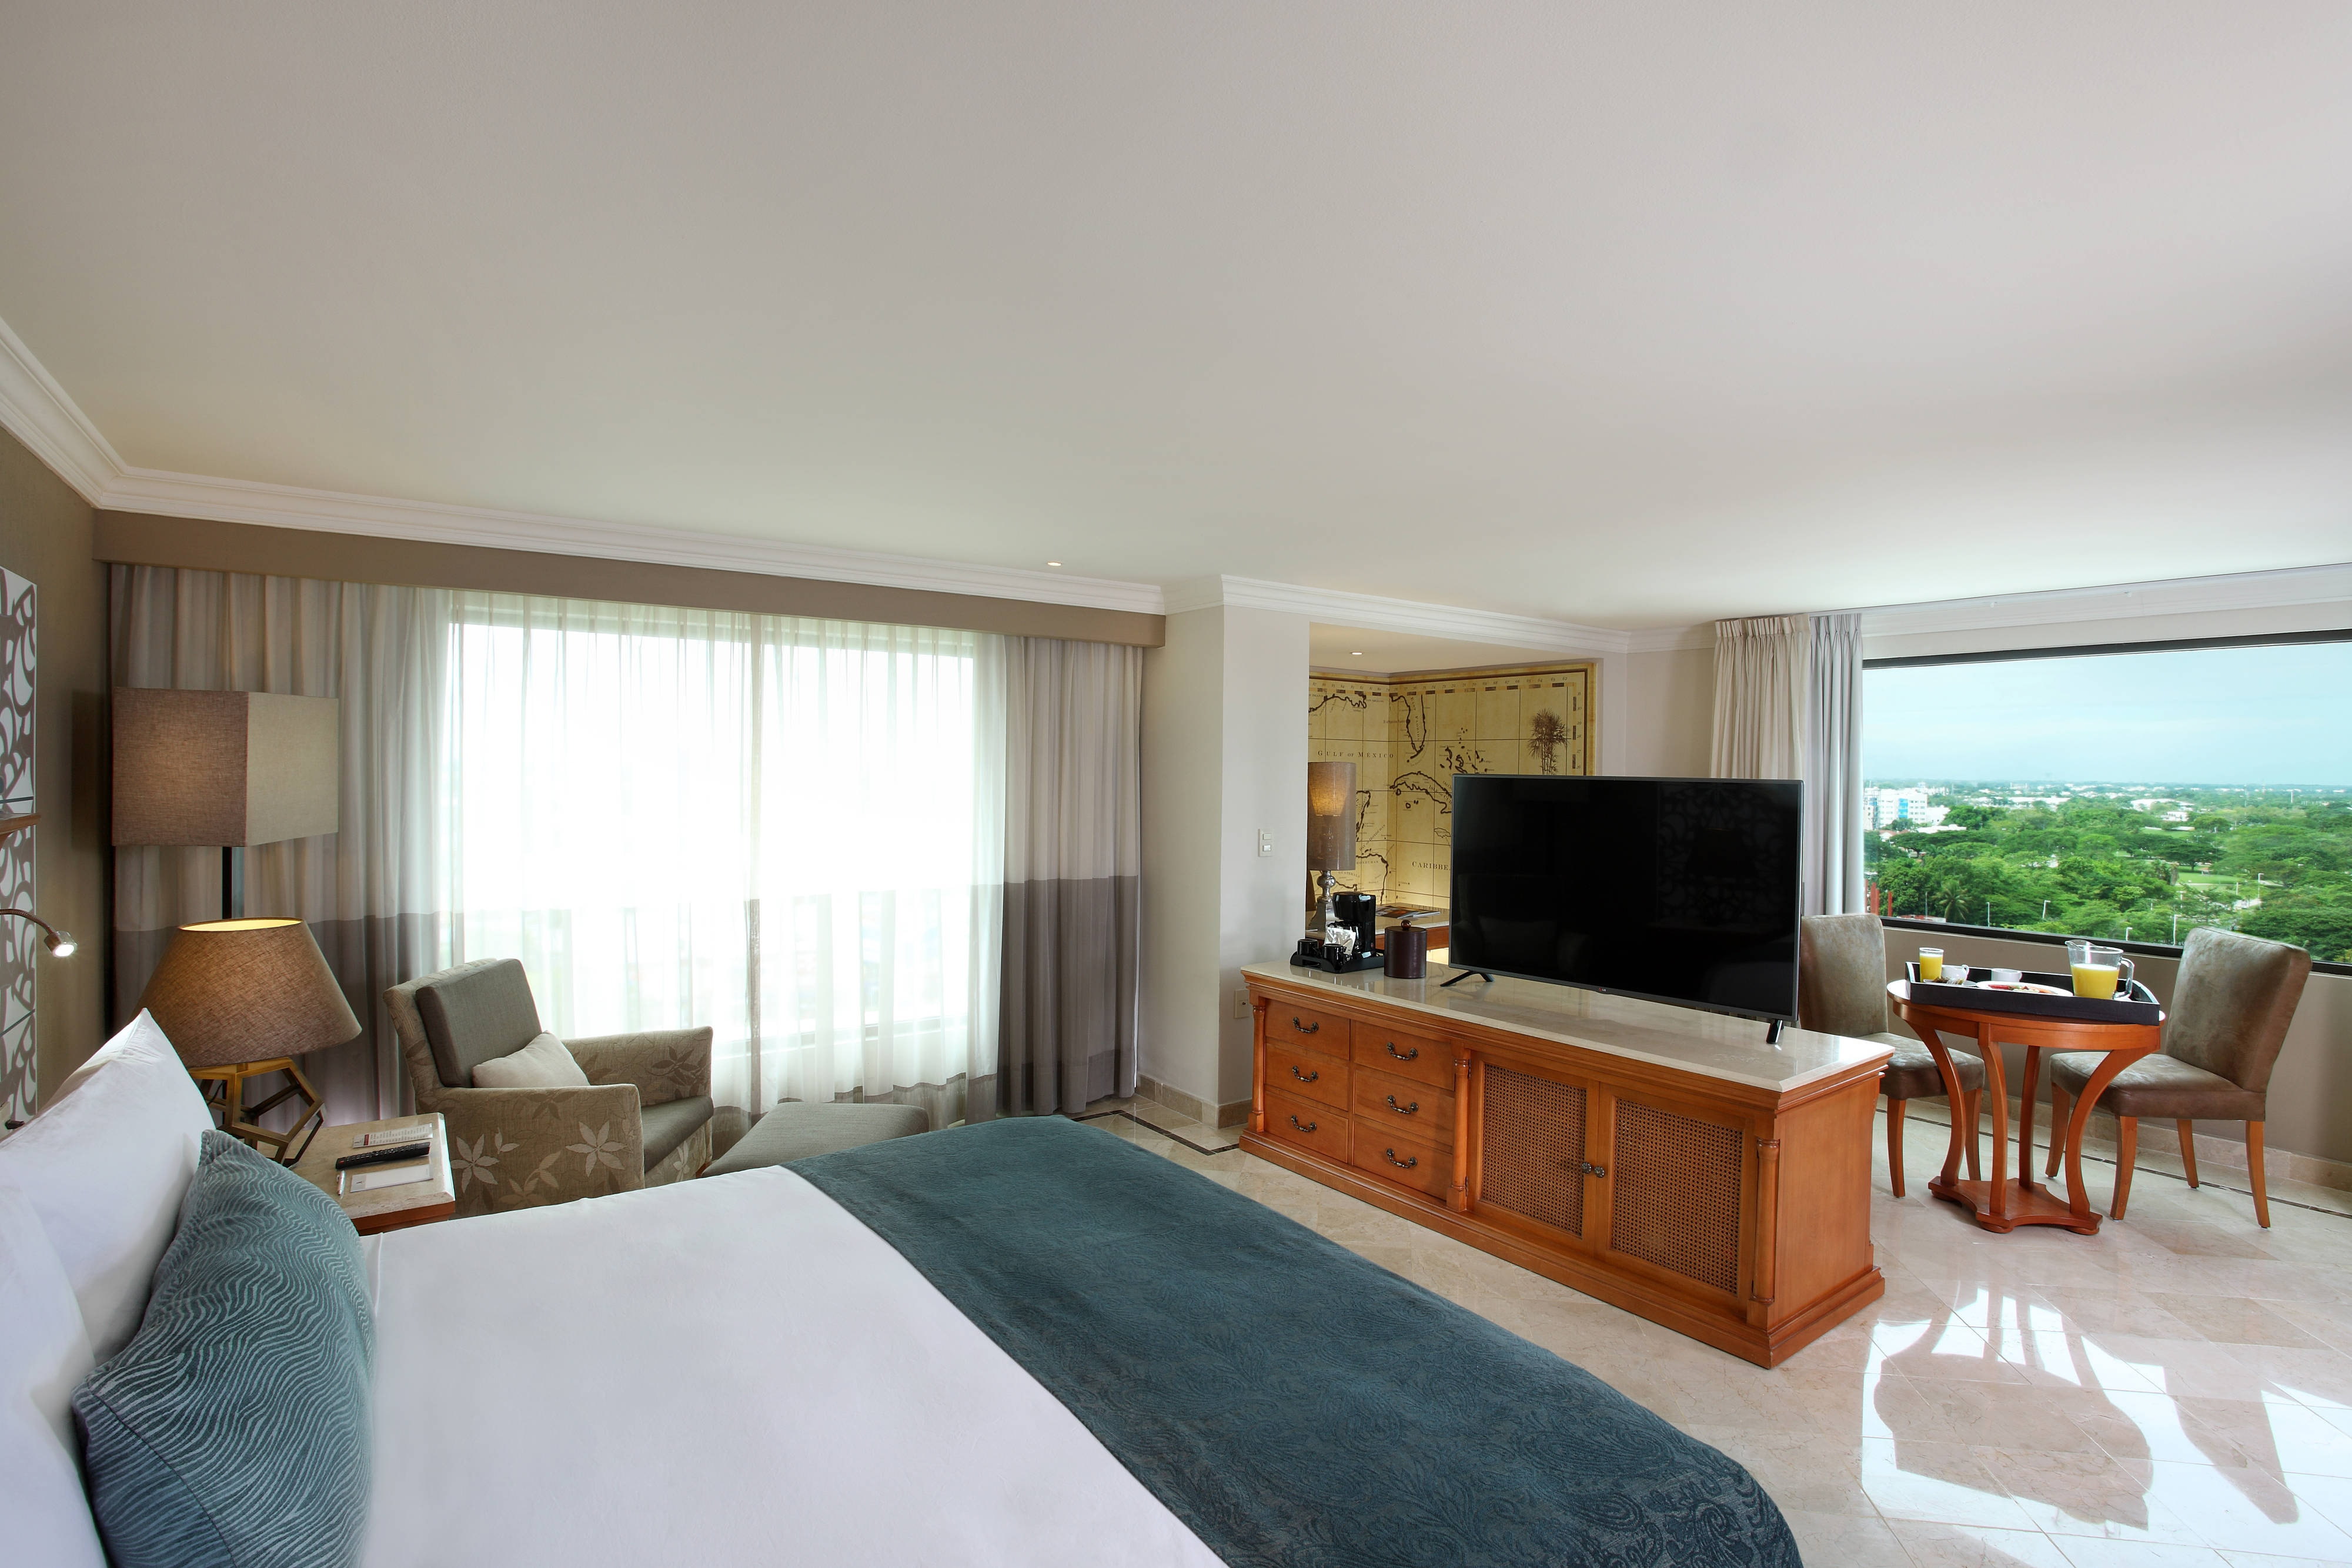 Suite Junior del hotel Marriott en Villahermosa